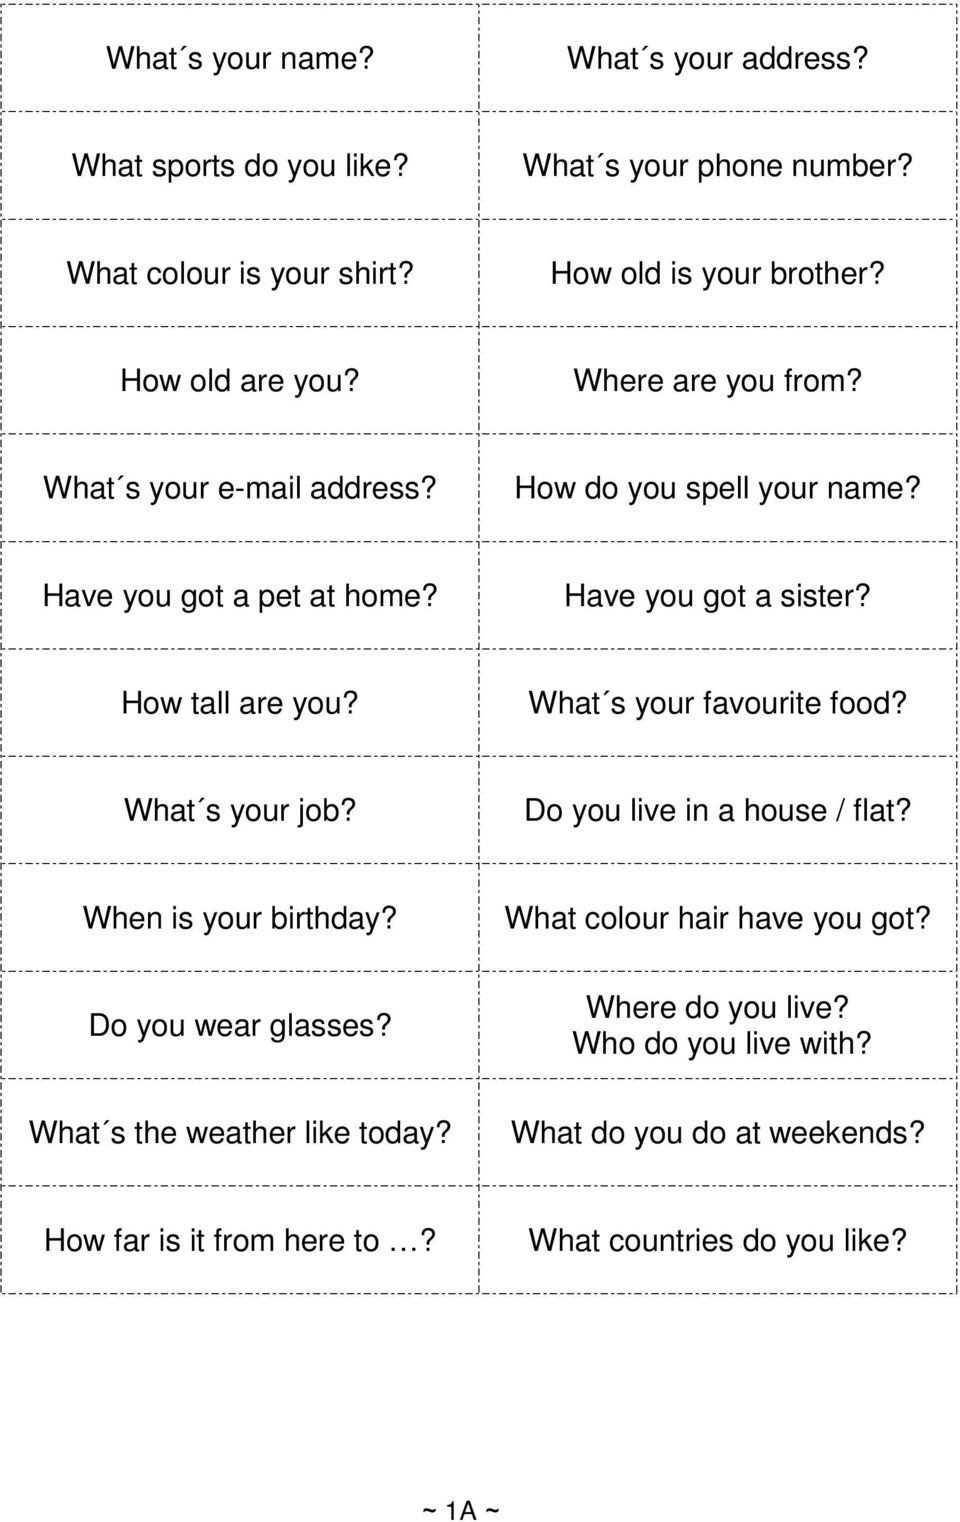 How tall are you? What s your favourite food? What s your job? Do you live in a house / flat? When is your birthday? What colour hair have you got?